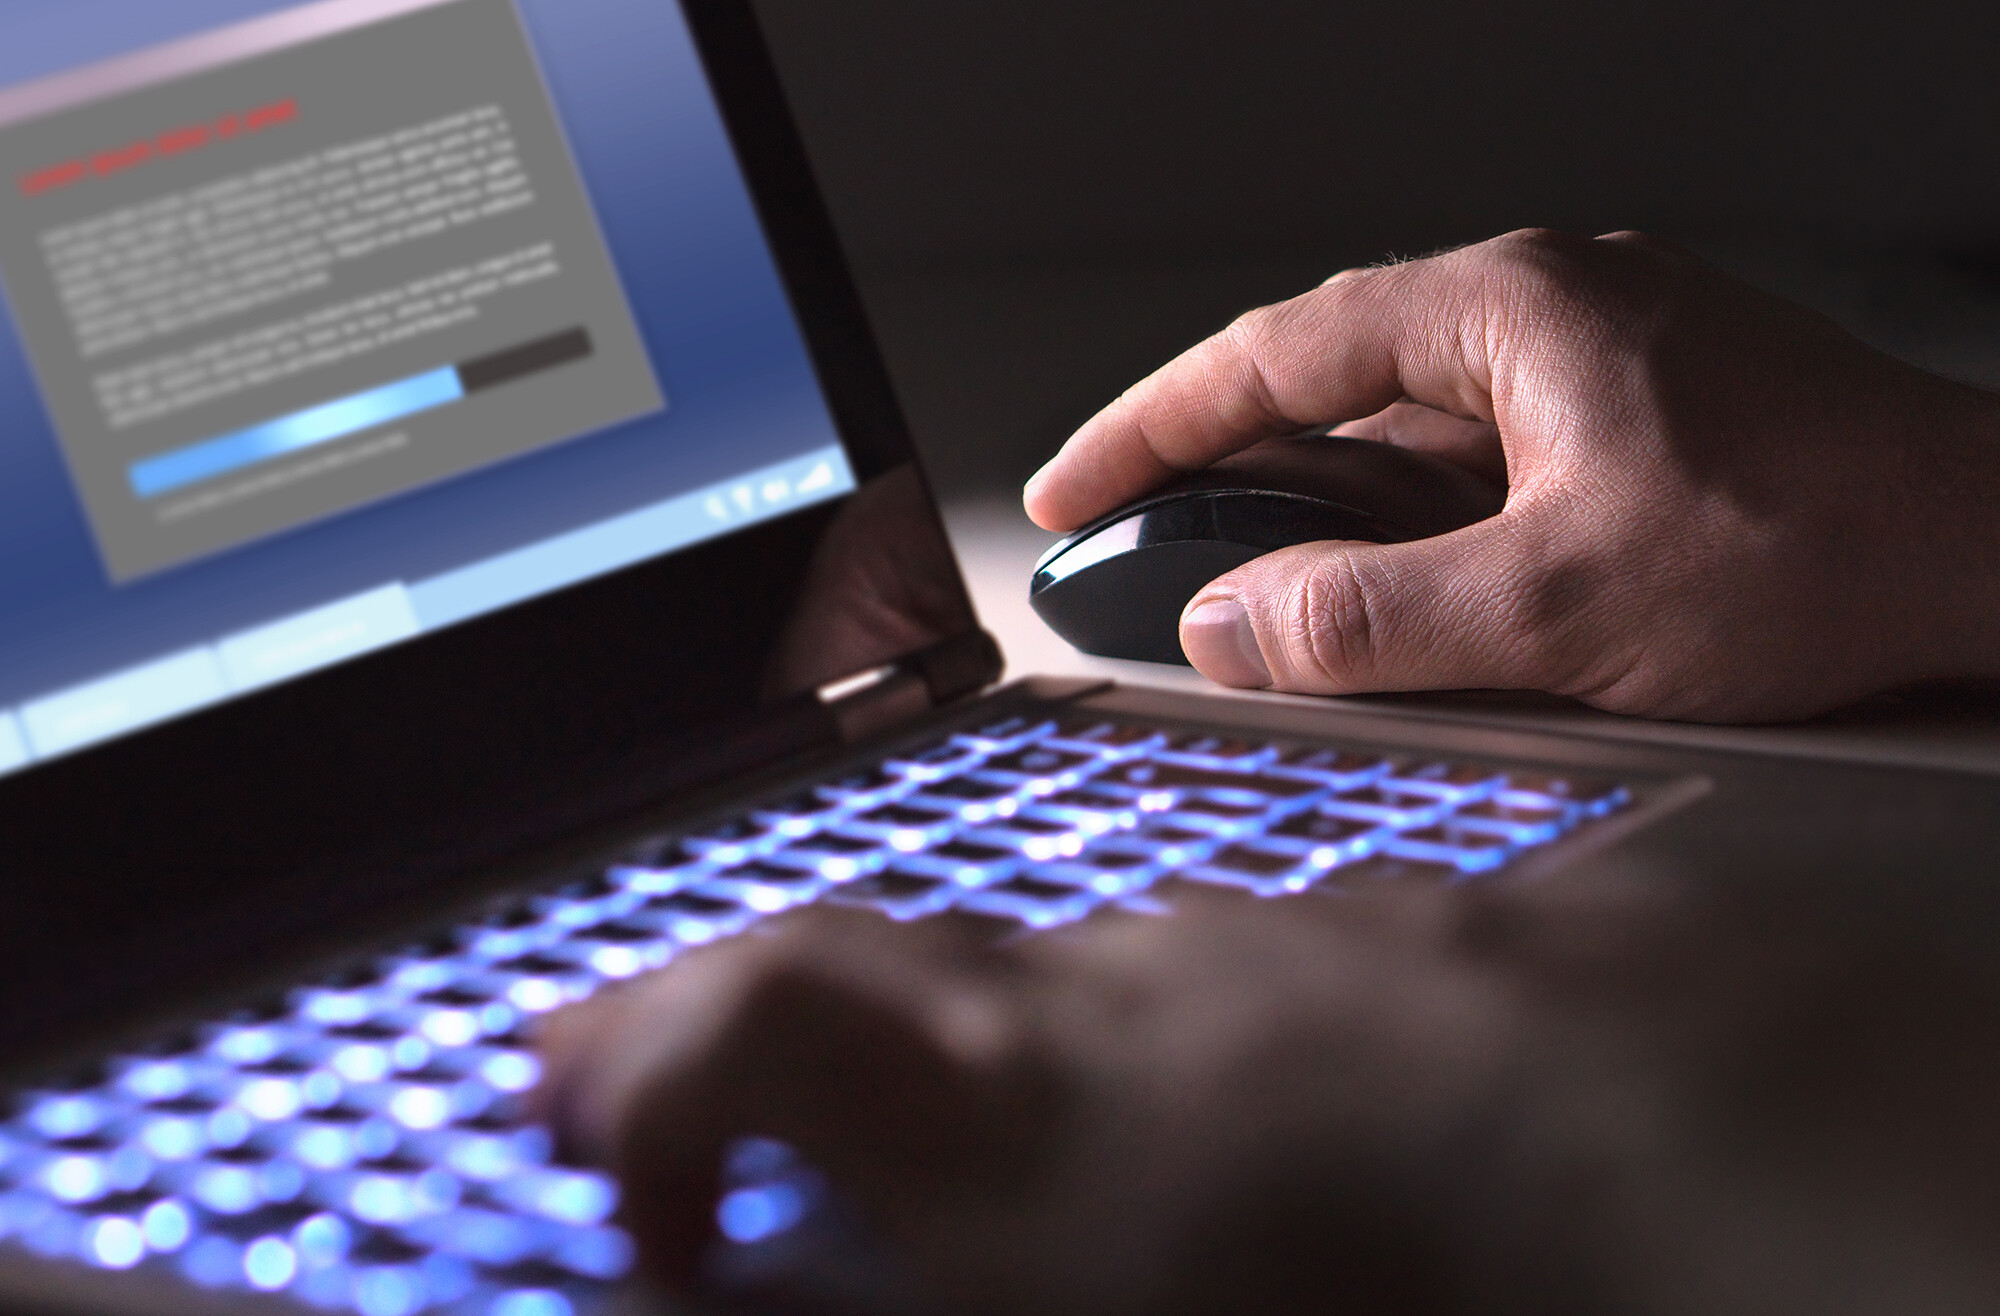 <i>Shutterstock</i><br/>A Russian-speaking cybercriminal group responsible for a series of ransomware attacks on major US firms brought some of its infrastructure back online this week in a sign that it could be back in business